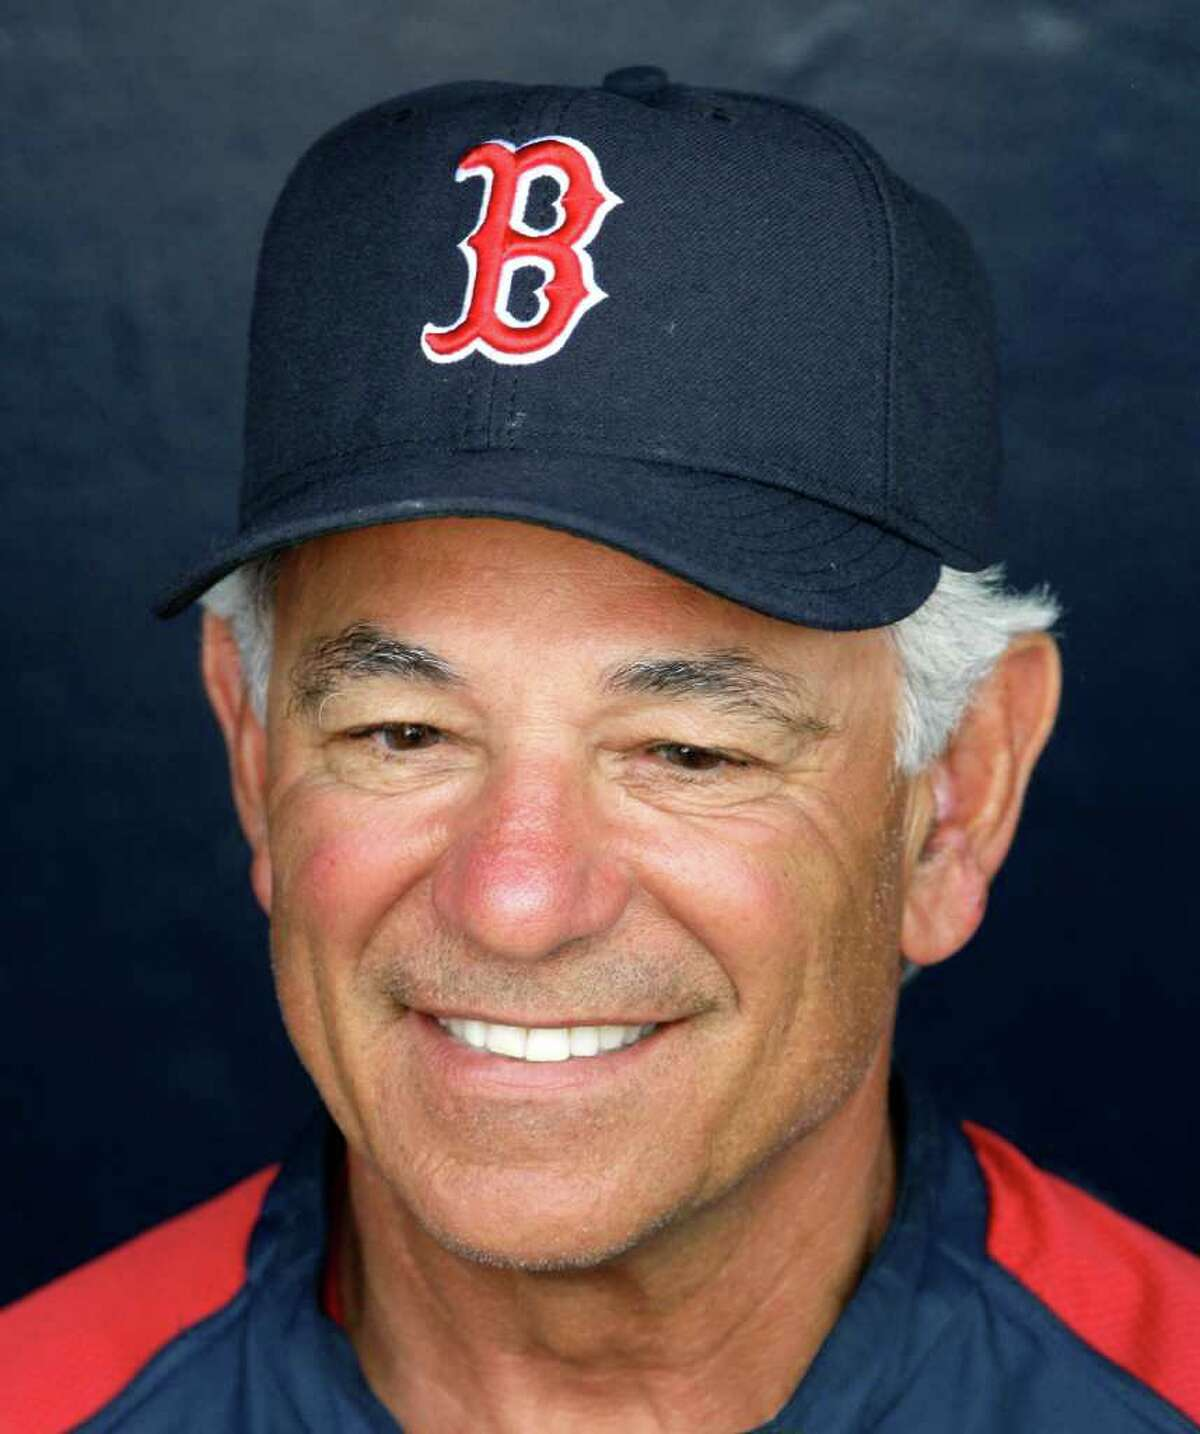 Boston Red Sox manager Bobby Valentine is asked questions from reporters before the Red Sox faced the New York Yankees in a spring training baseball game at Steinbrenner Field in Tampa, Fla., Tuesday, March 13, 2012.